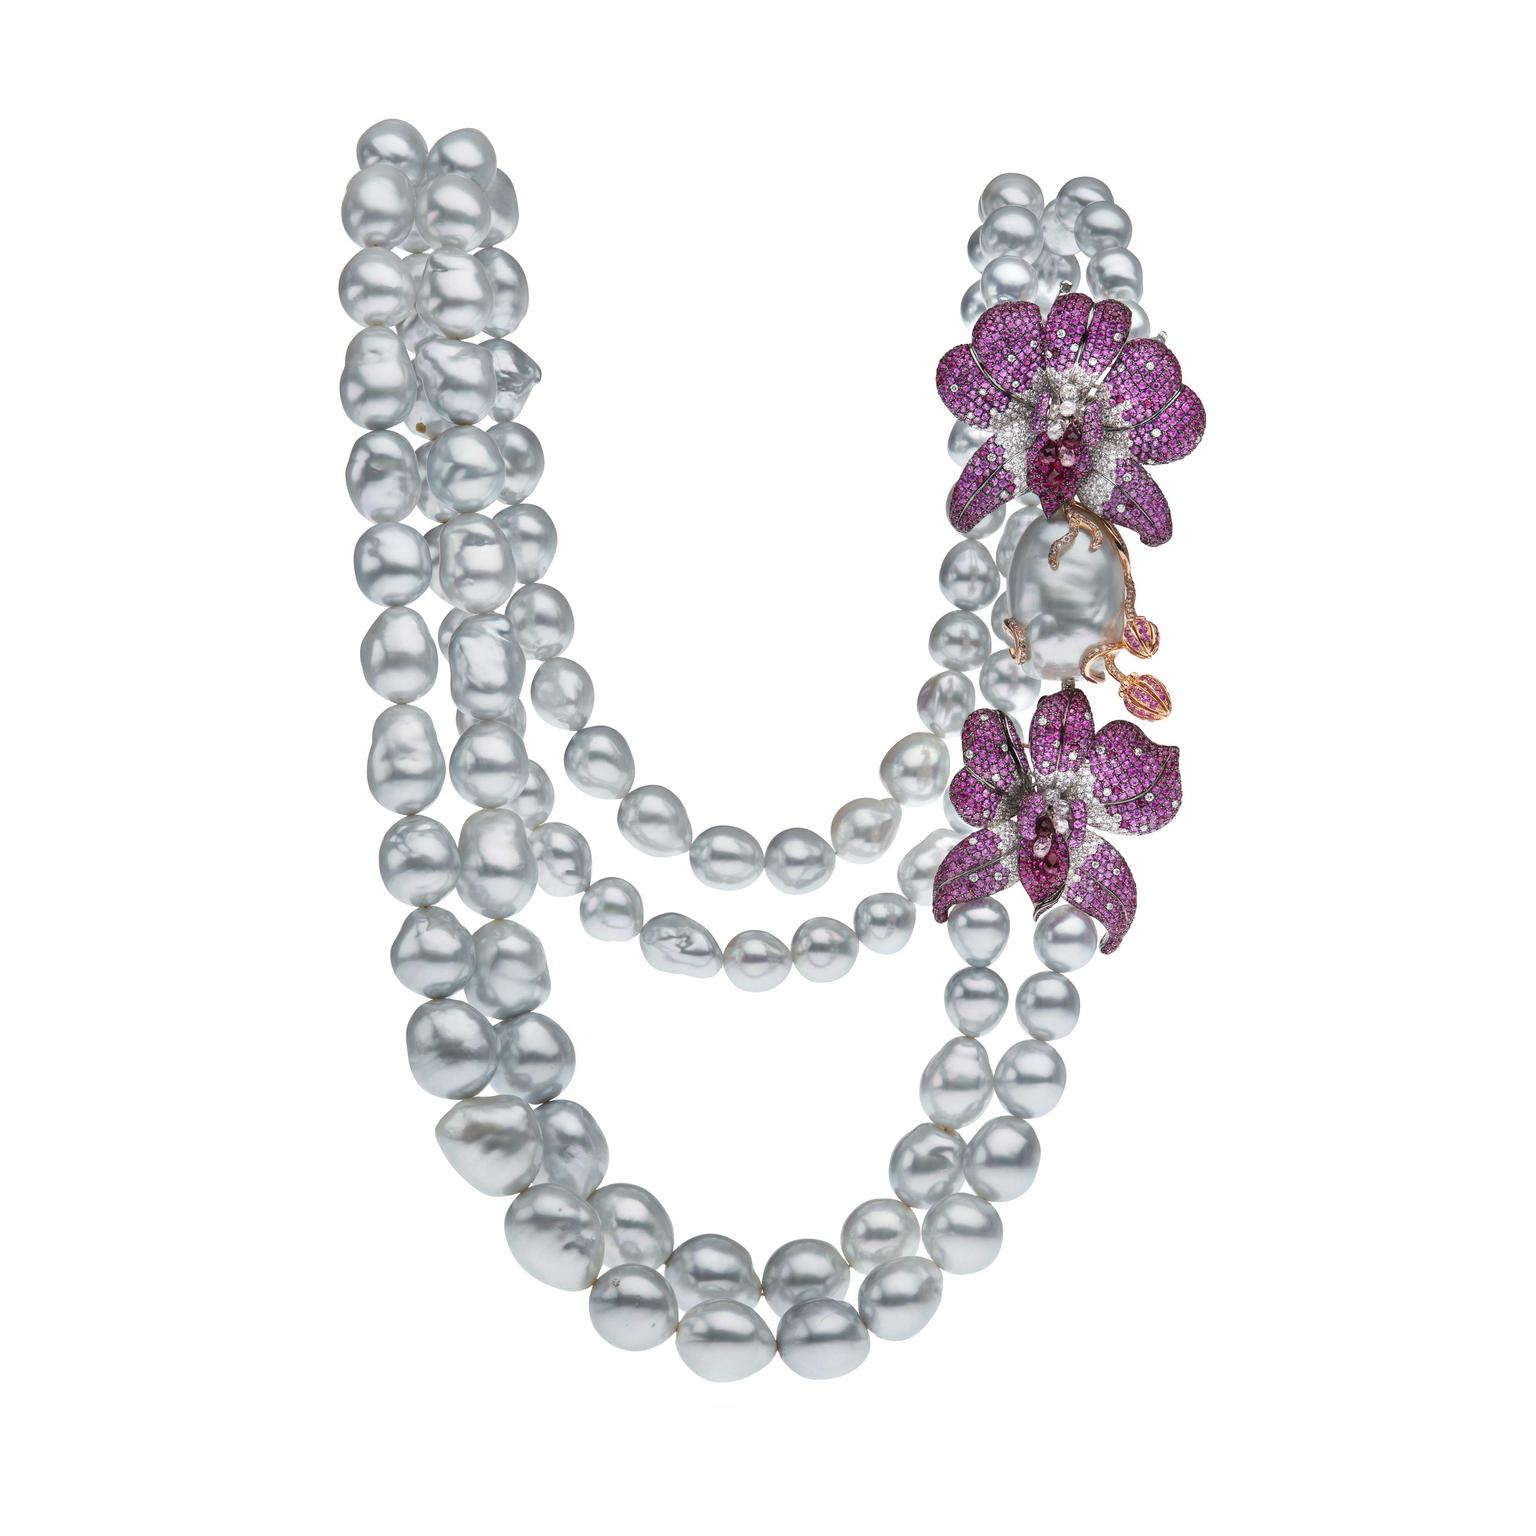 Autore Orchid Curly Pinks South Sea pearl necklace